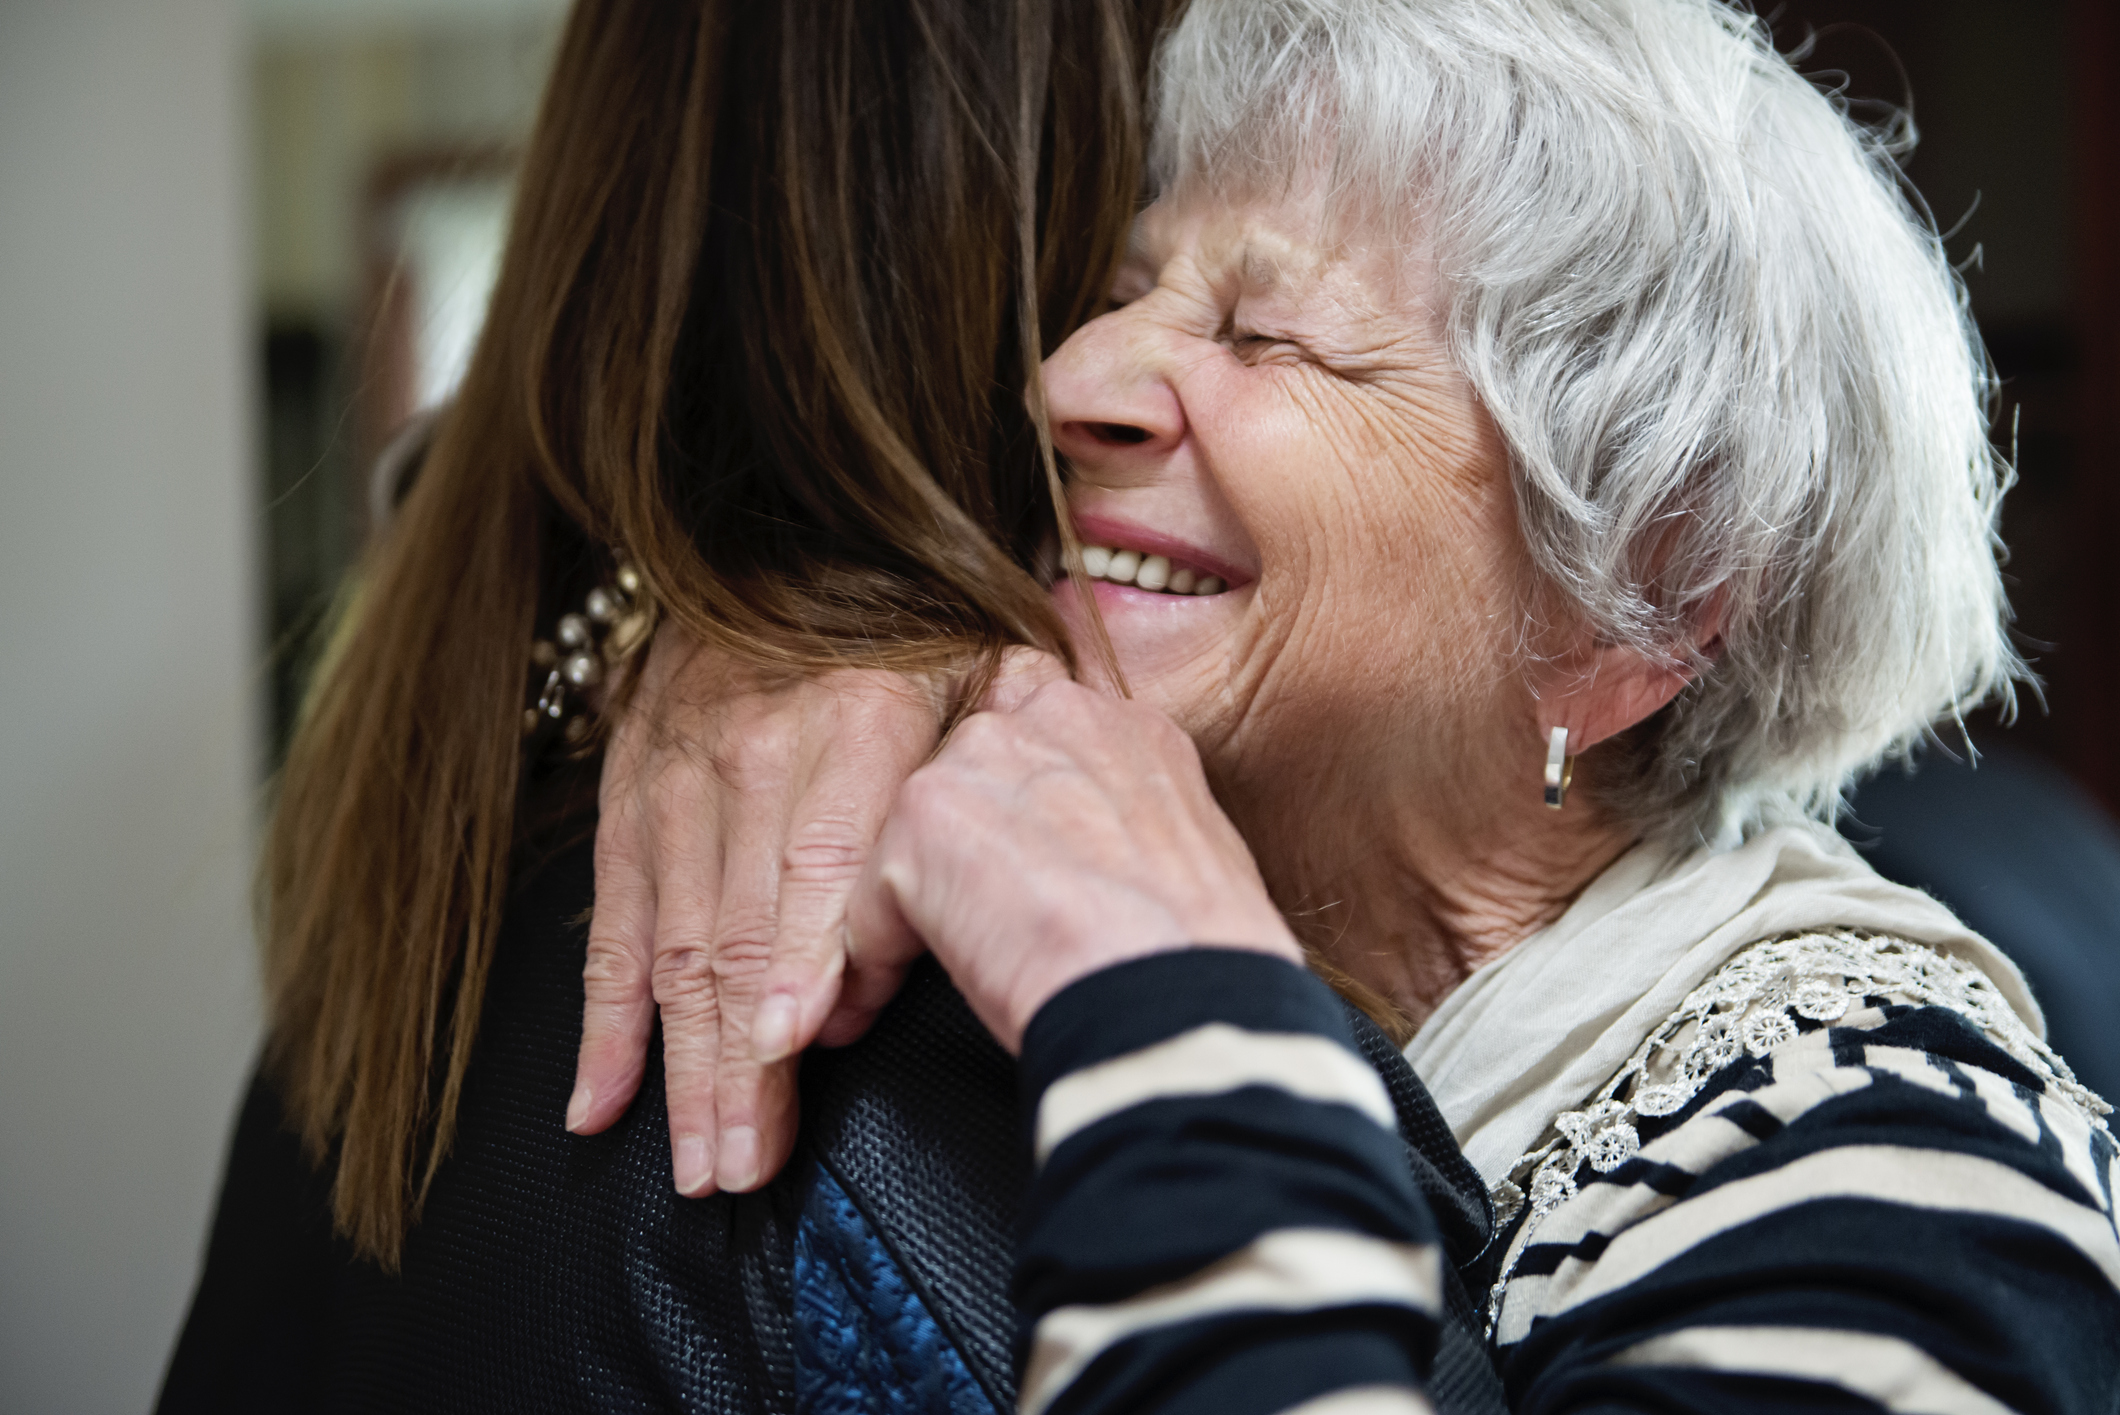 Senior grandmother and adult granddaughter hugging (Getty Images)